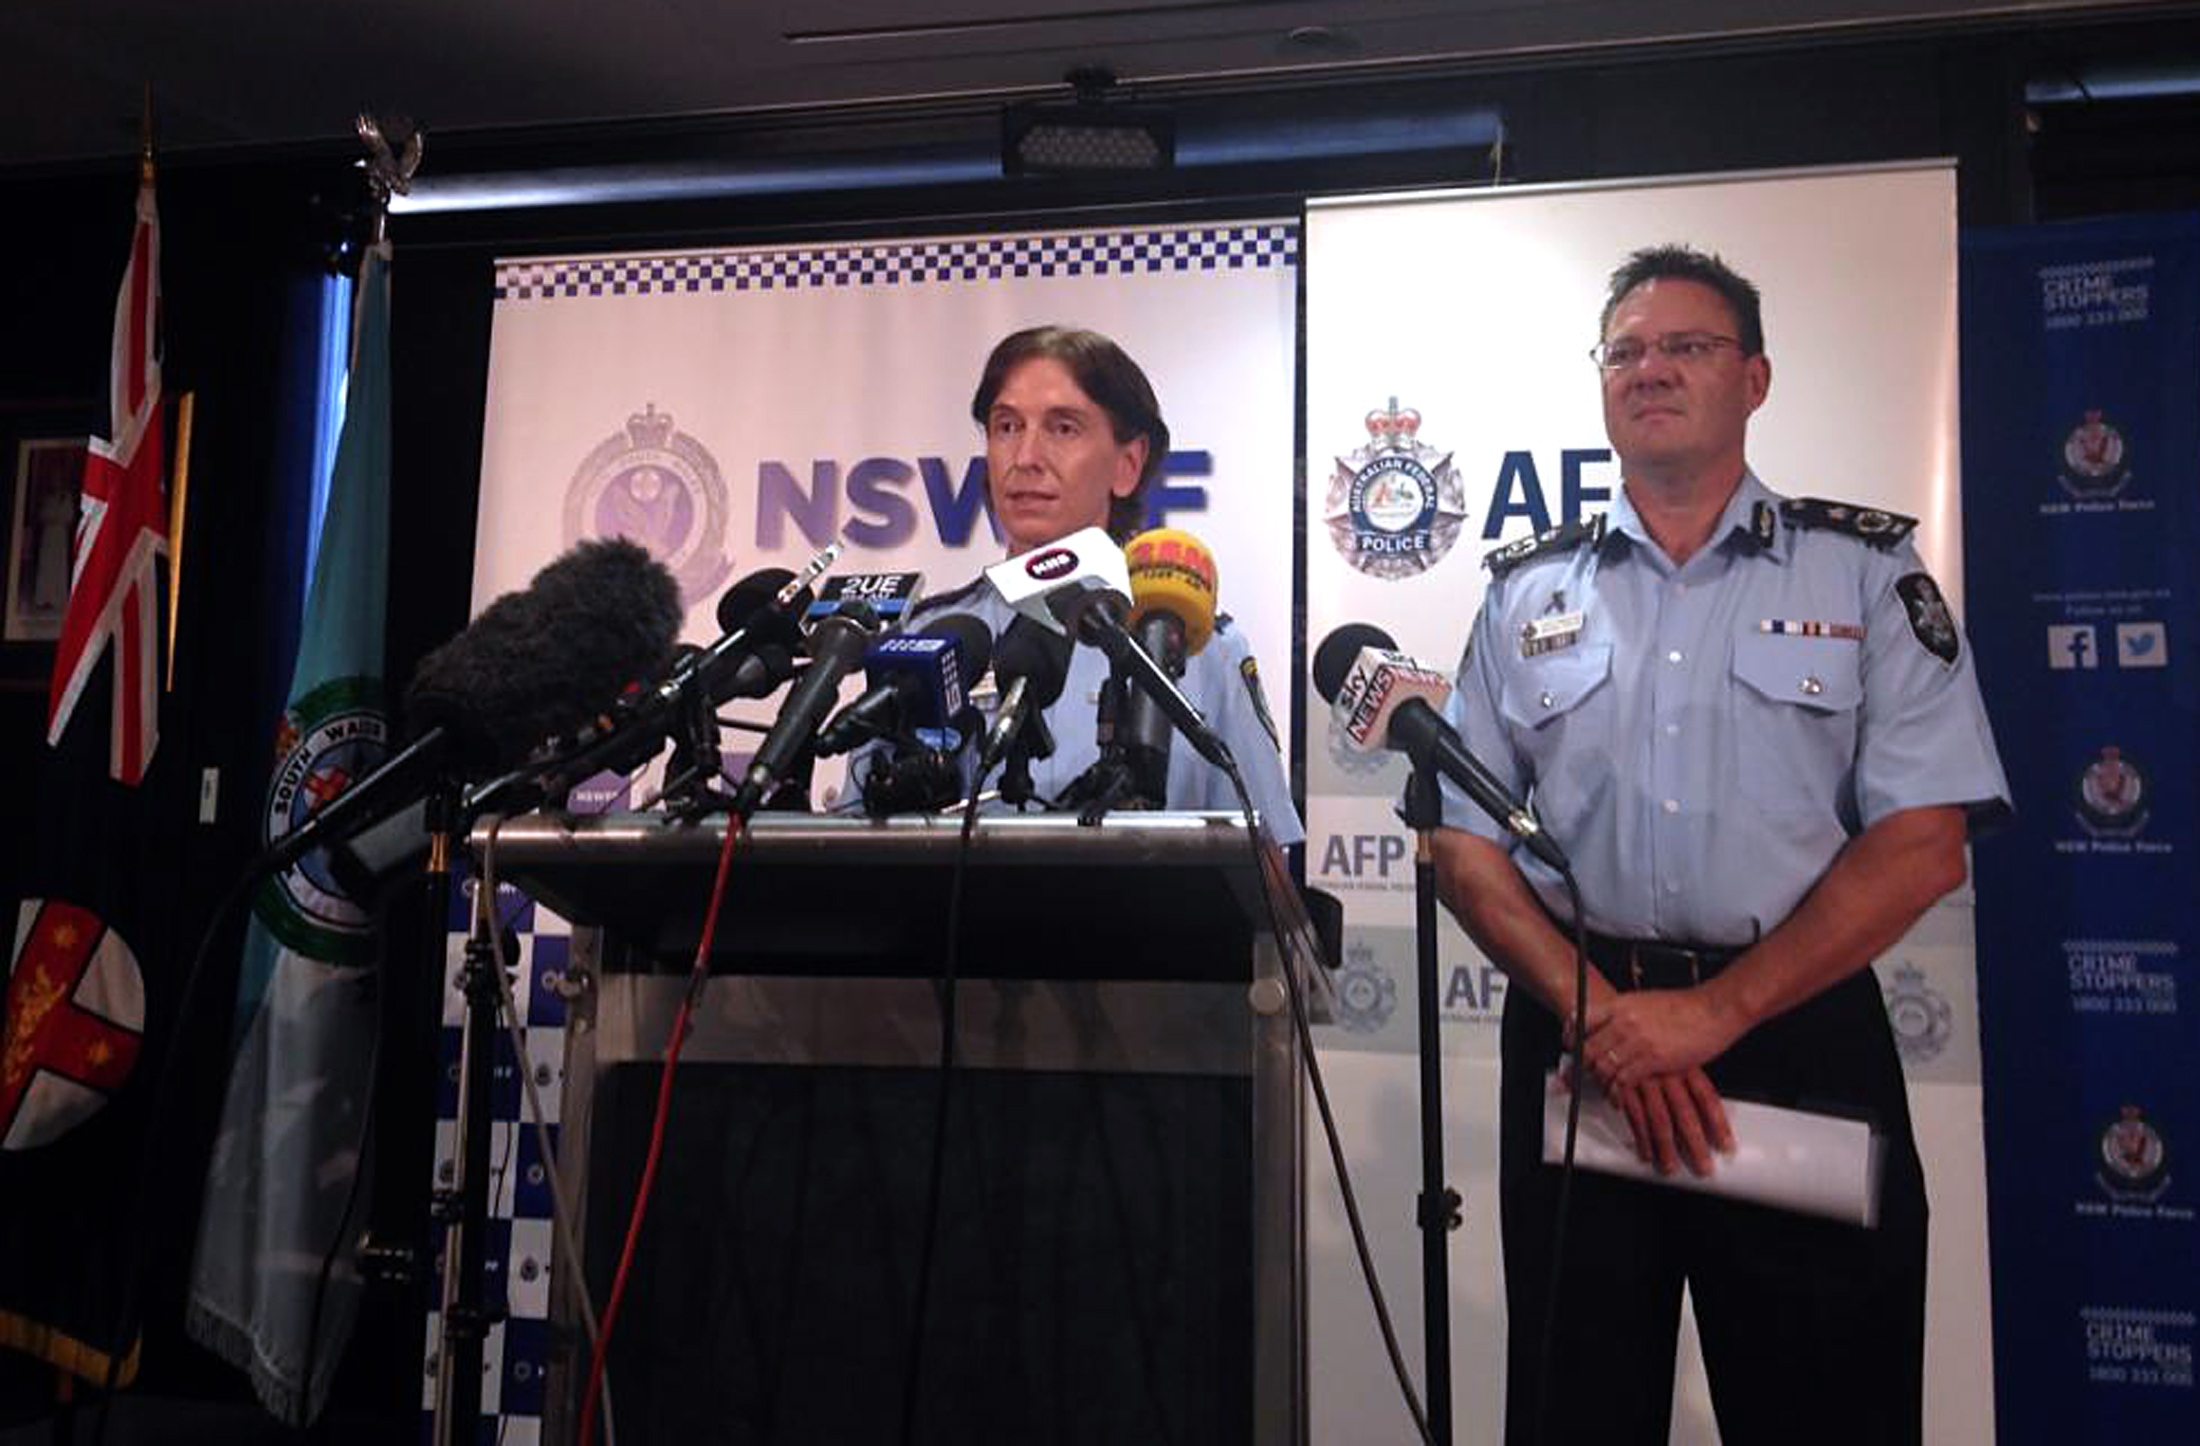 Australian anti-terror police say imminent IS-linked attack thwarted